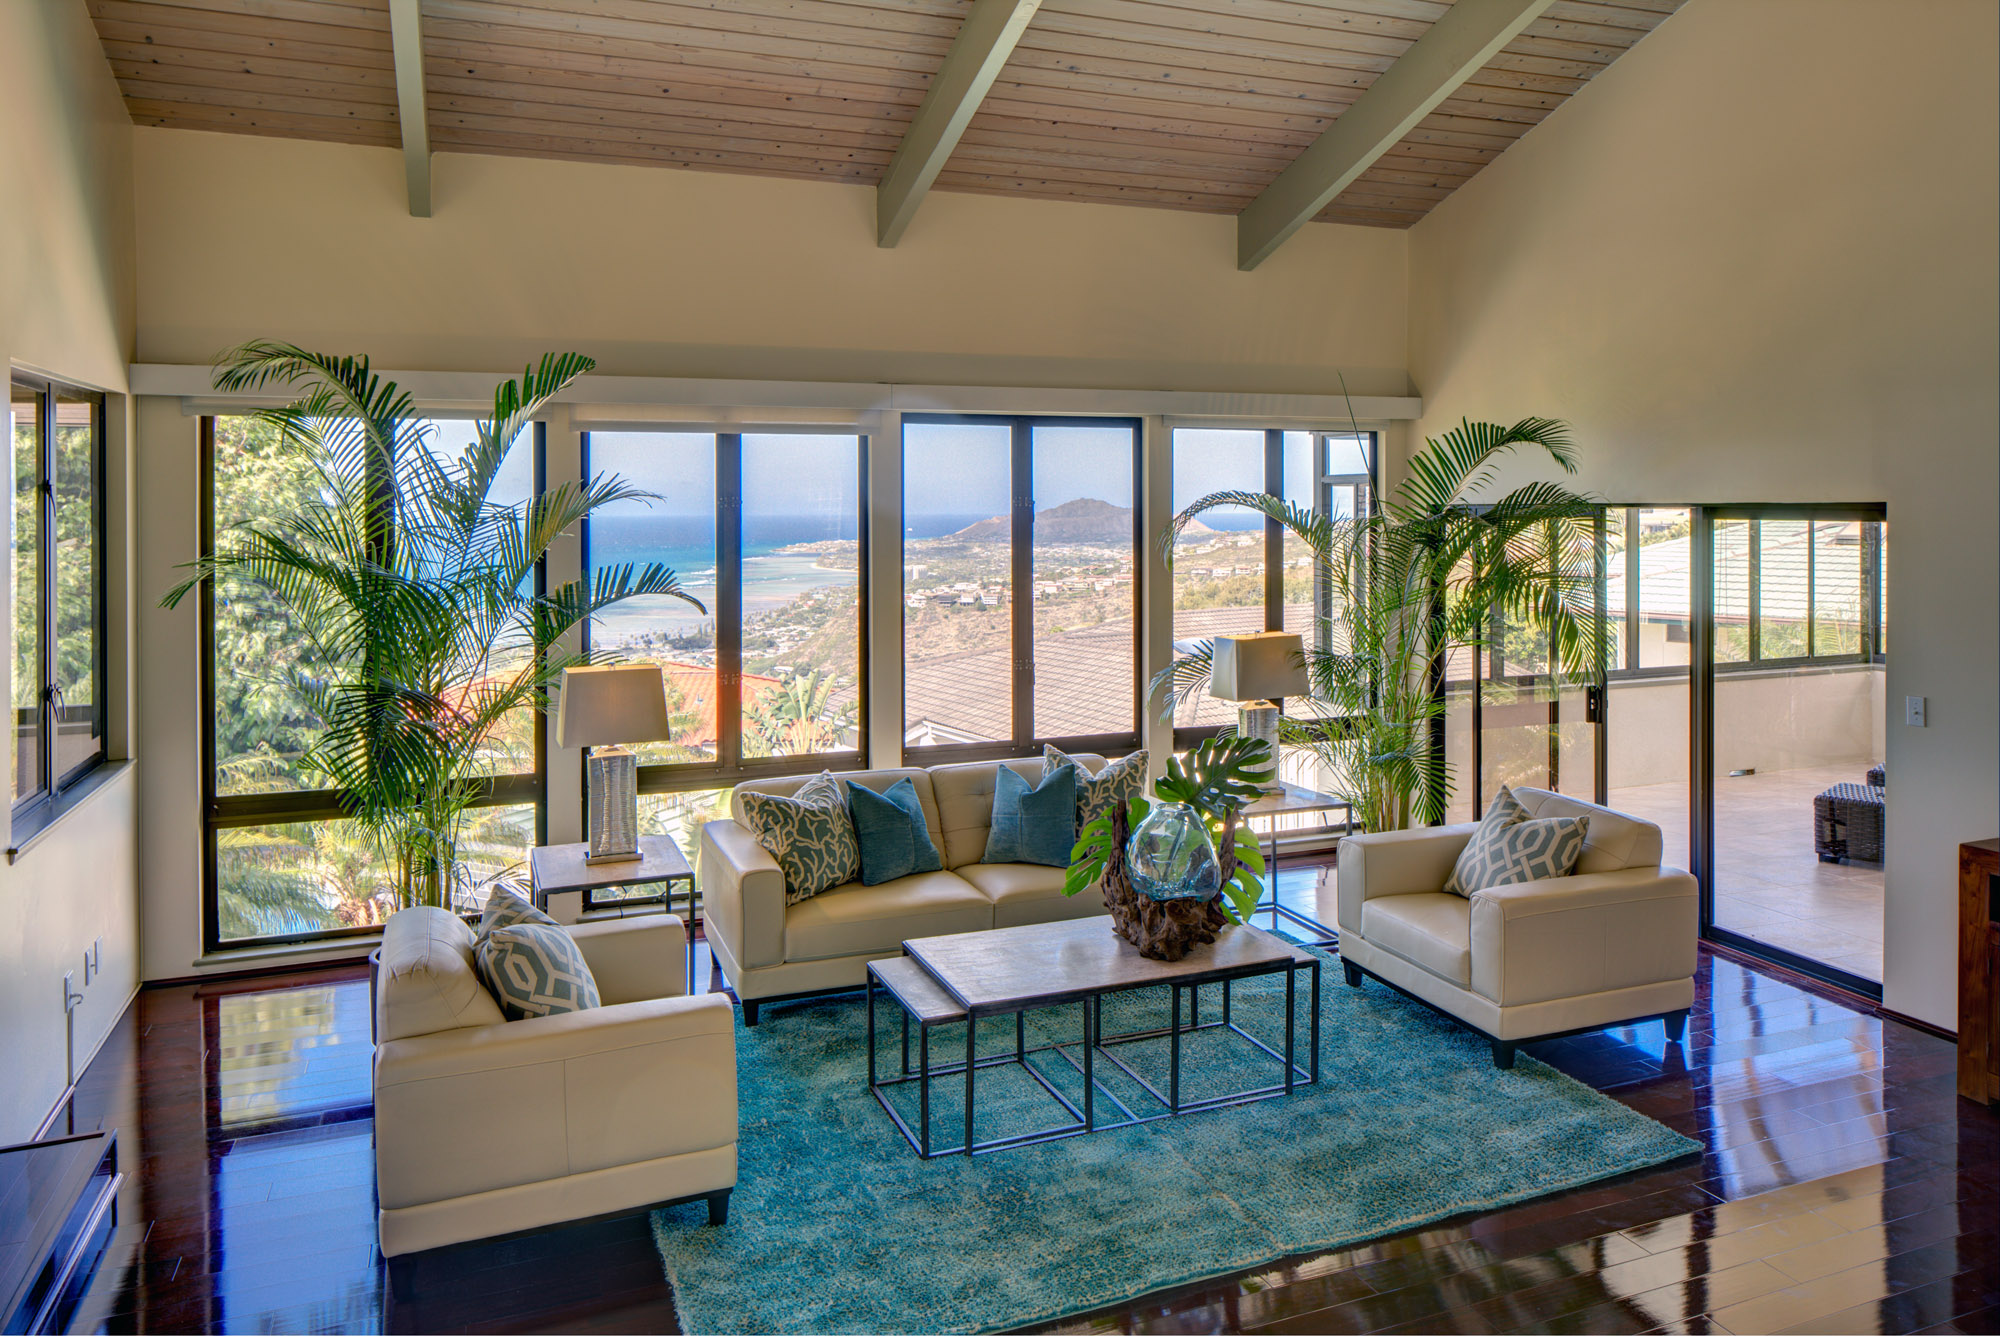 596 Puuikena Dr. Luxury Home Staging Hawaii, Home Staging Hawaii, Inouye Interiors LLC,Best Home Stagers Hawaii, Home Stagers in Hawaii, Stagers Hawaii, Home Stager Hawaii, Luxury Home Stager Hawaii